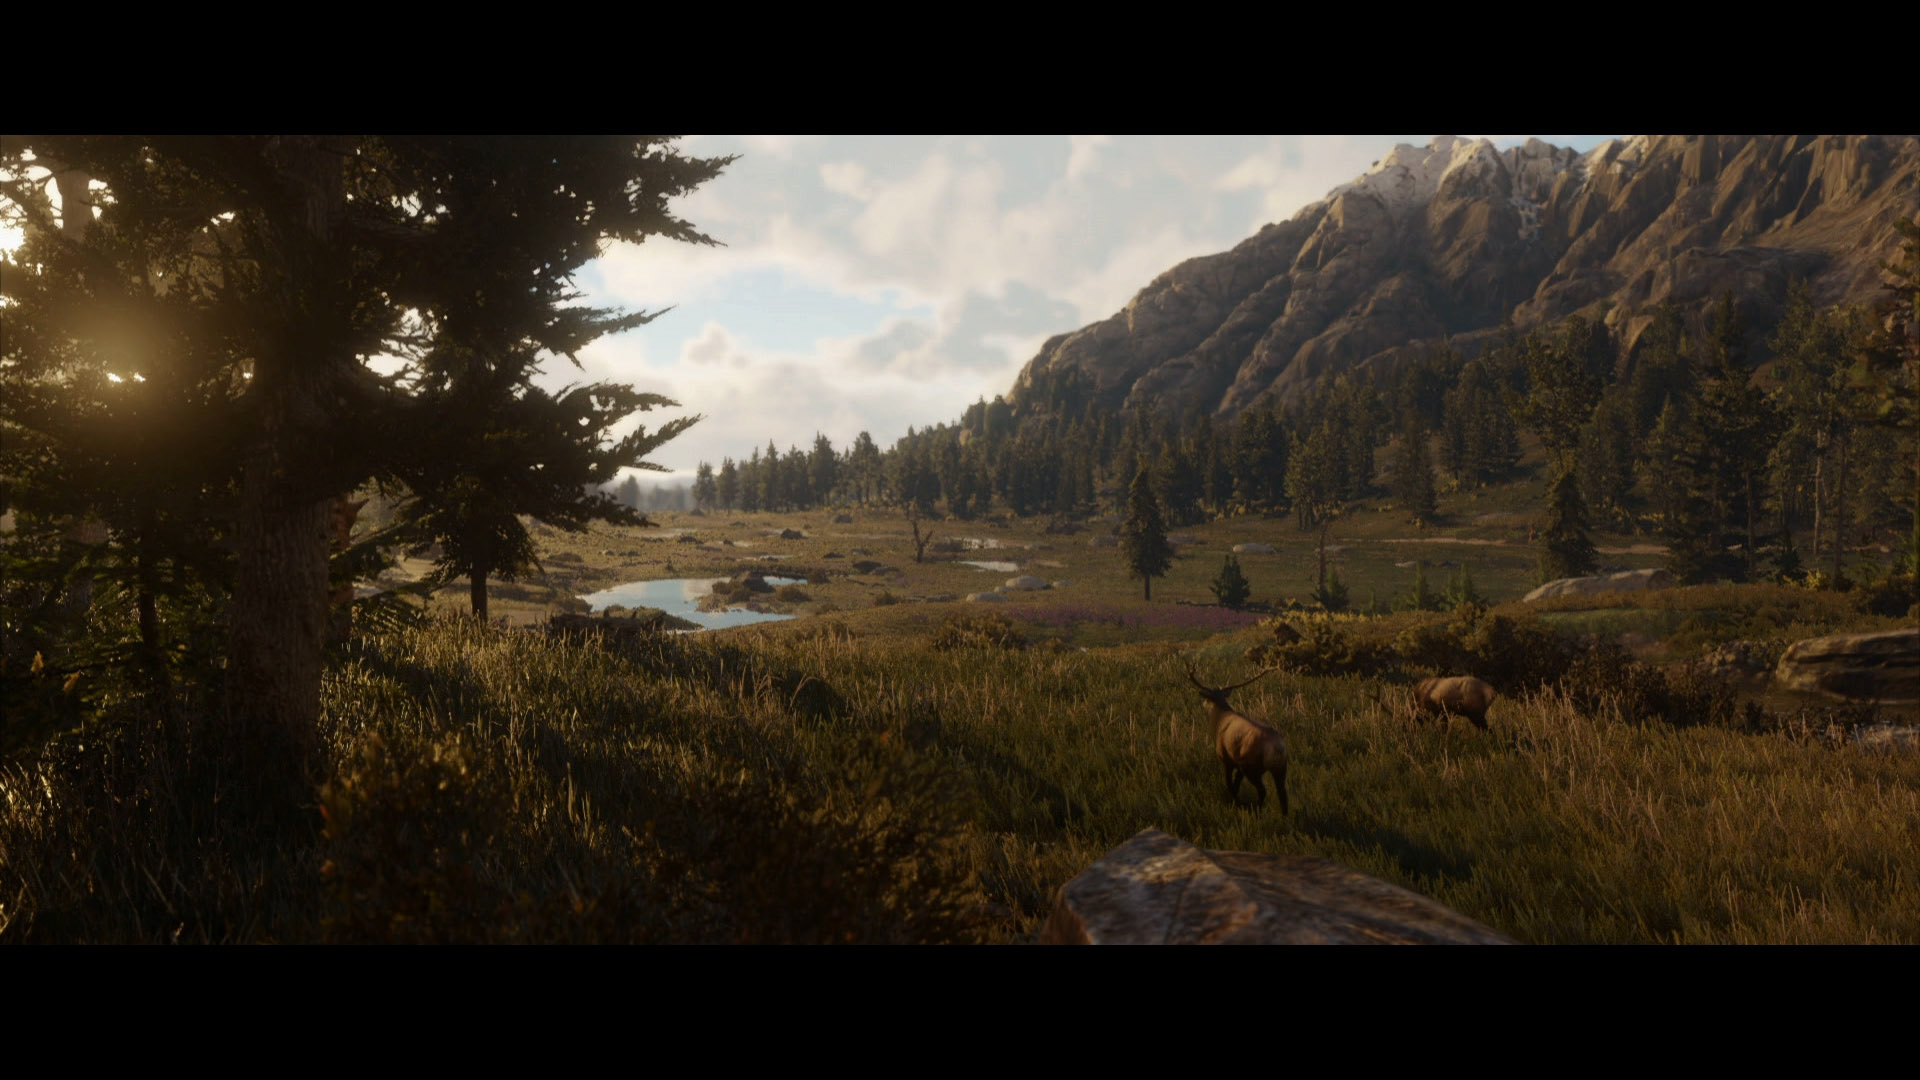 It's clear that wildlife will be a huge part of Red Dead Redemption 2